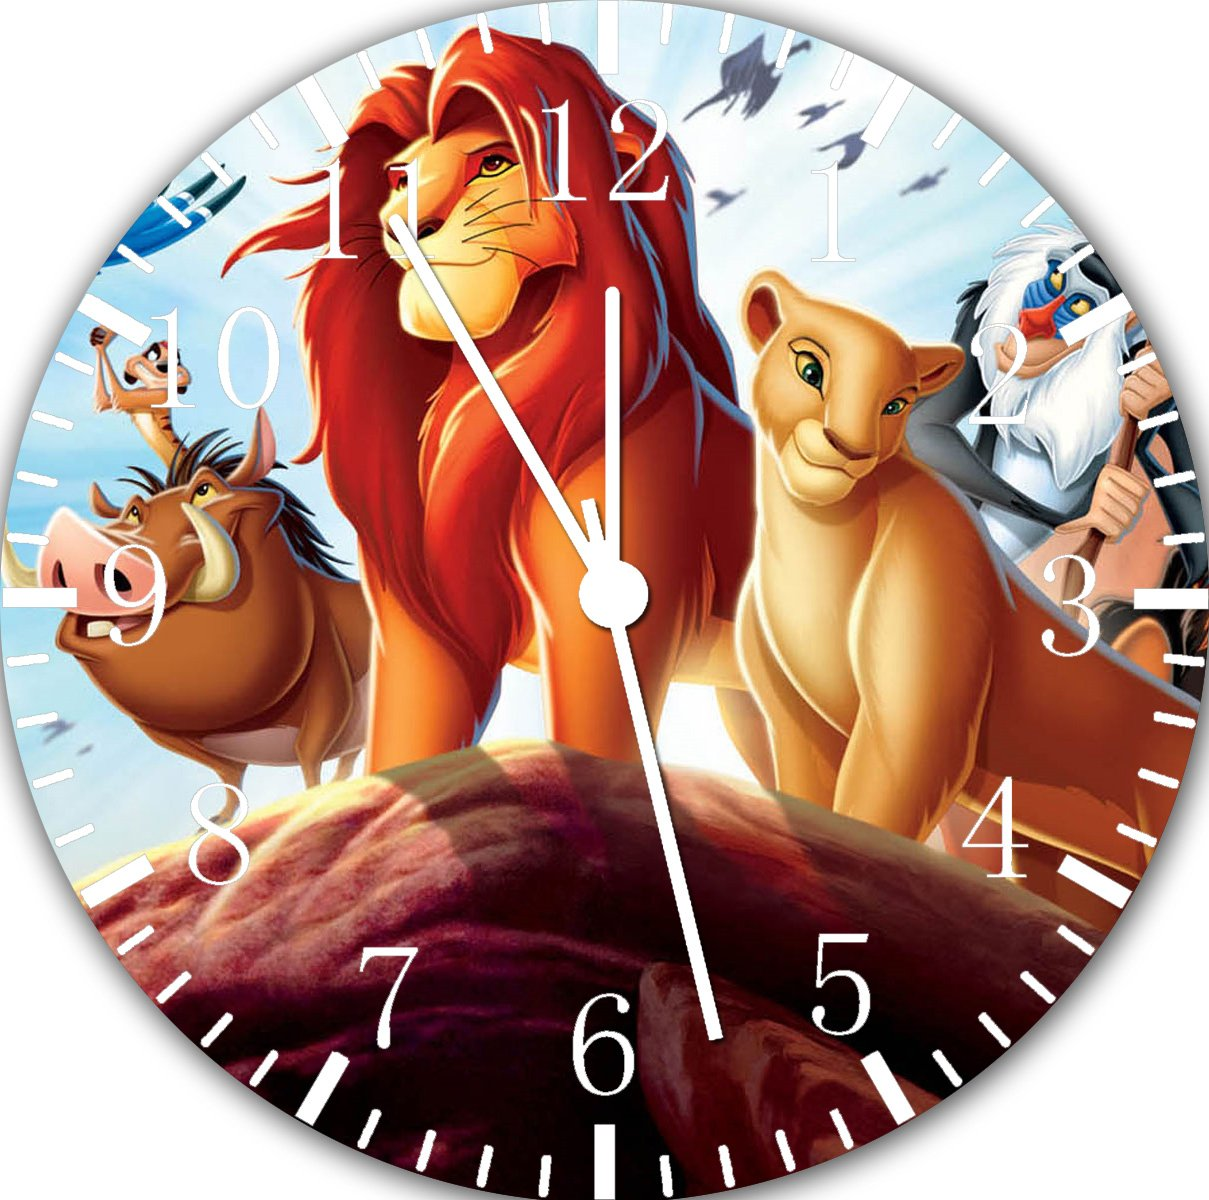 Disney Lion King Wall Clock 10 Will Be Nice Gift and Room Wall Decor E120 RUSCH